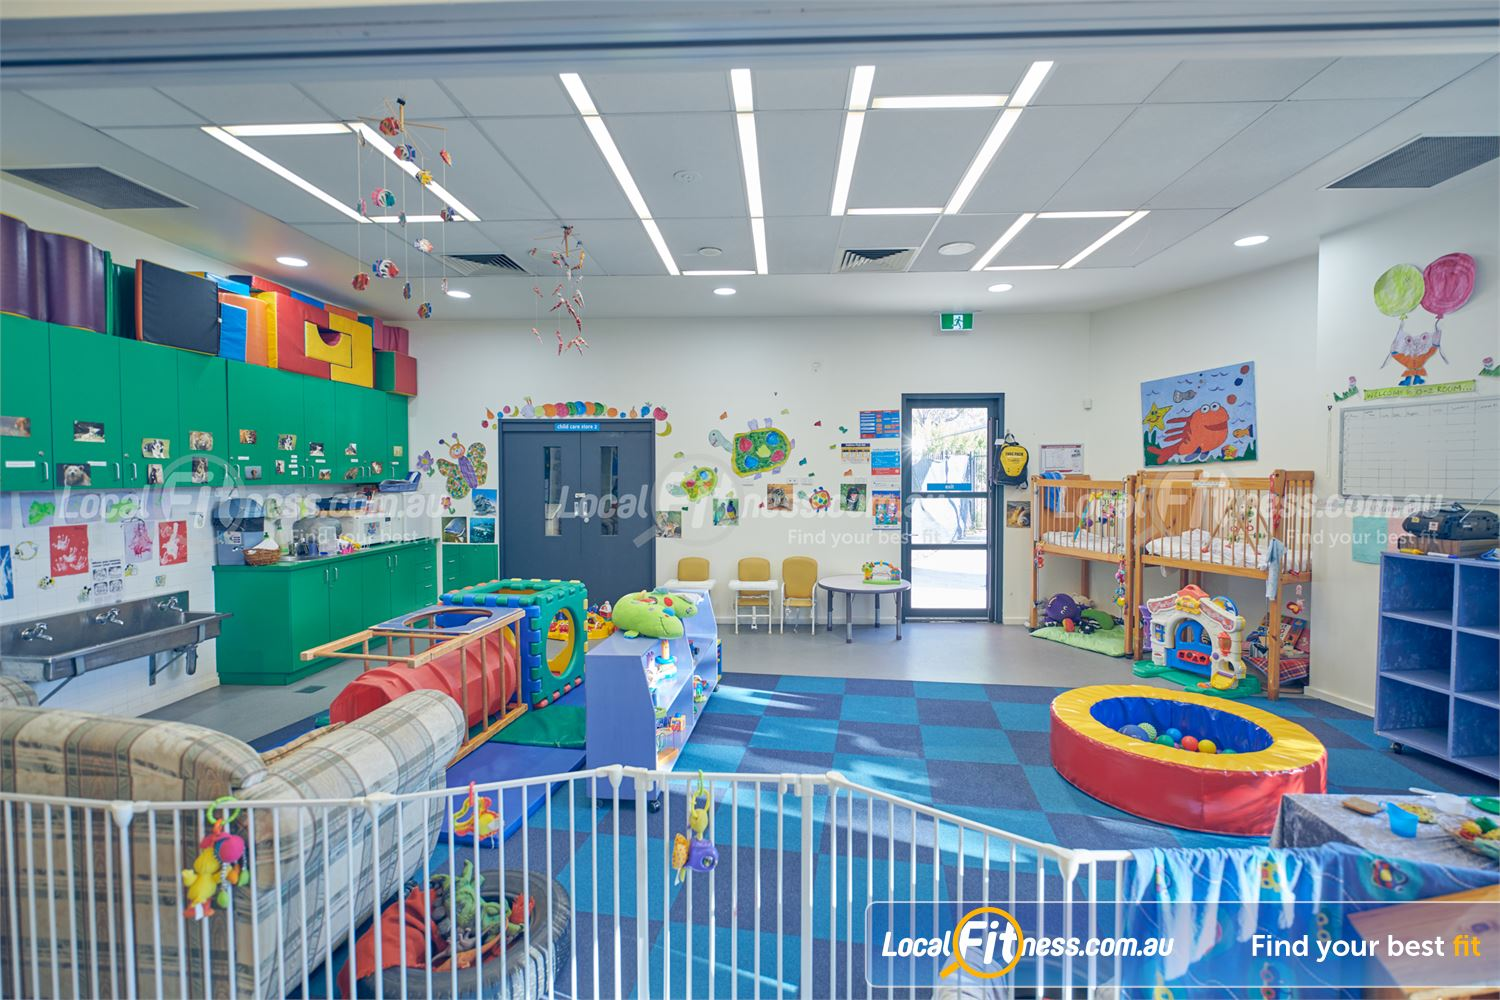 Maribyrnong Aquatic Centre Maribyrnong Maribyrnong Childcare will simply give you some kid-free time while you train.